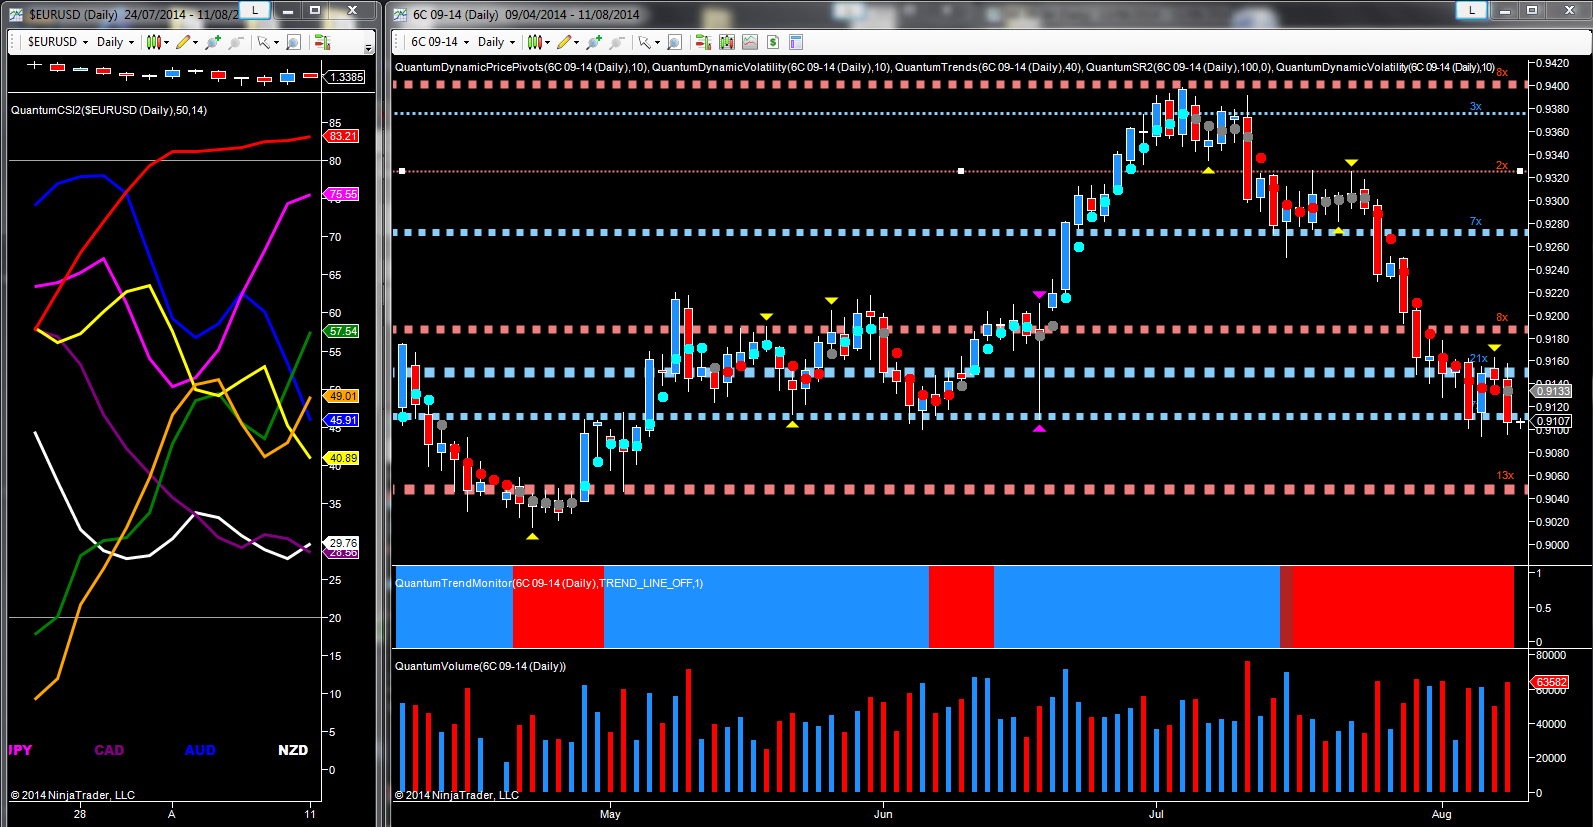 CAD/USD - September futures daily chart